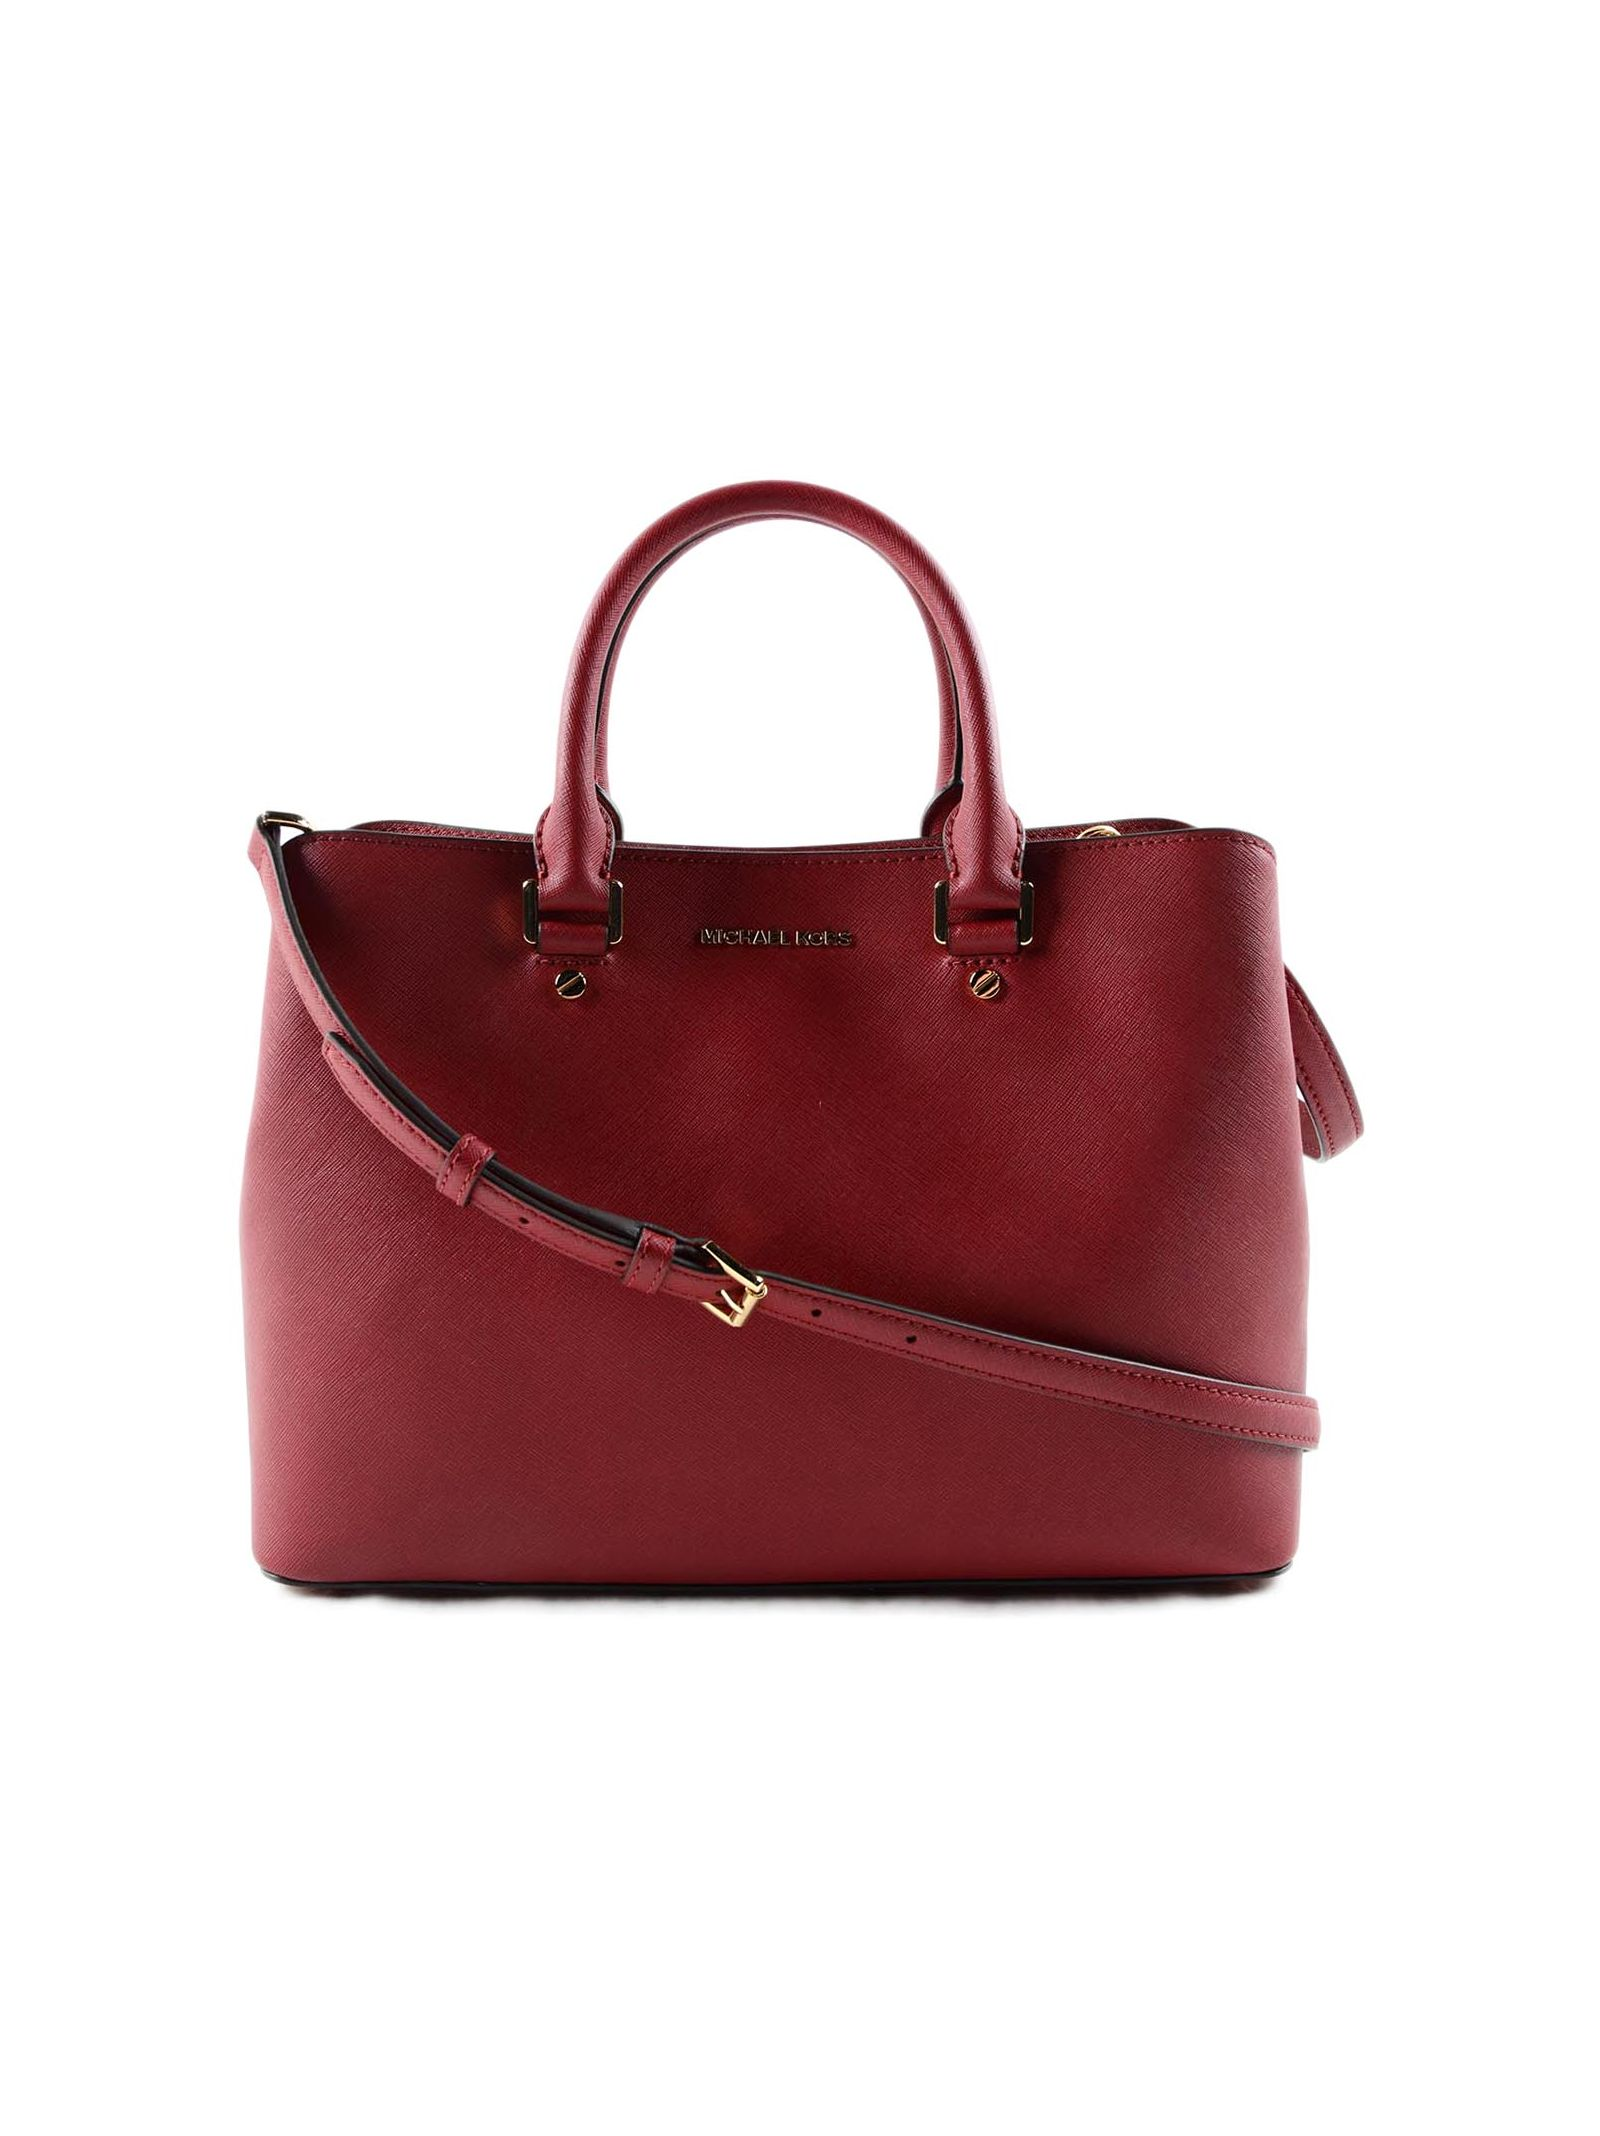 michael kors female michael kors savannah lg satchel